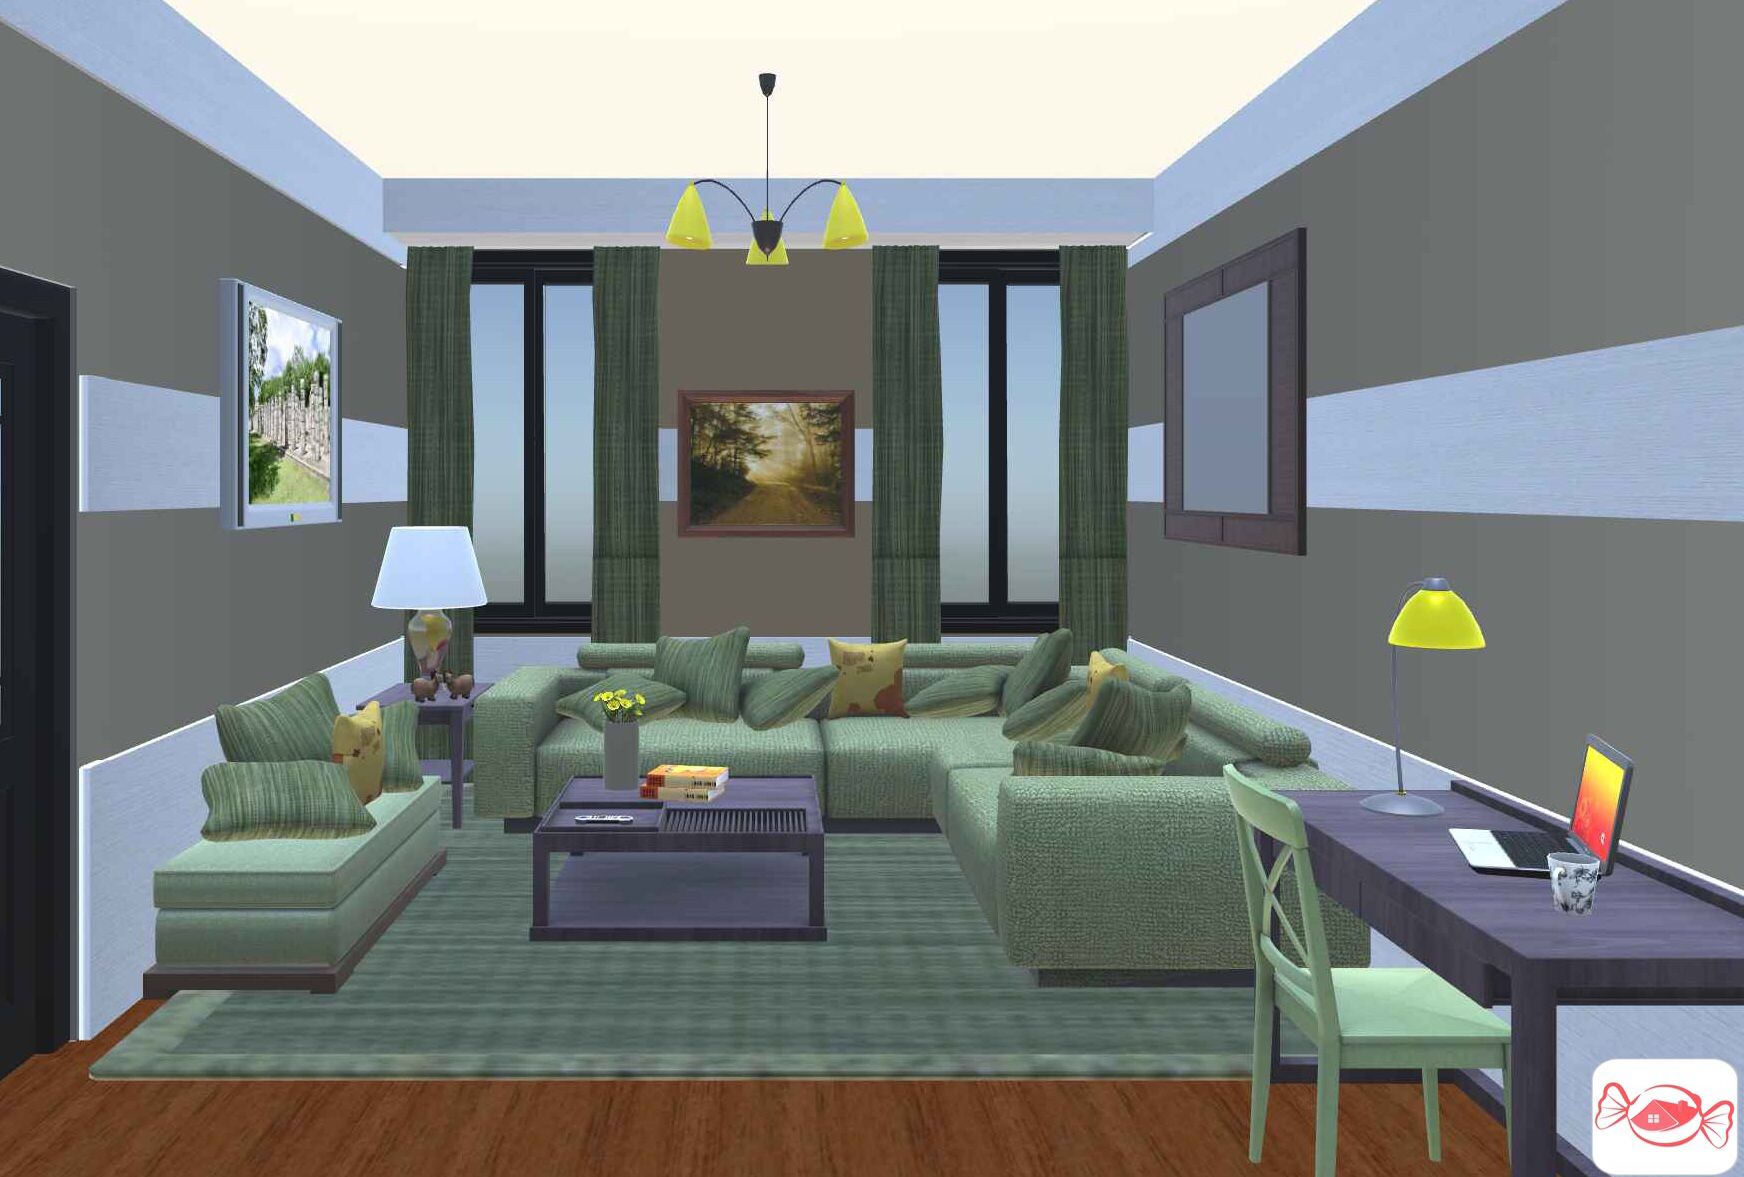 Living Room For Small Space Small Space Living Room Design Your Own Home Living Room